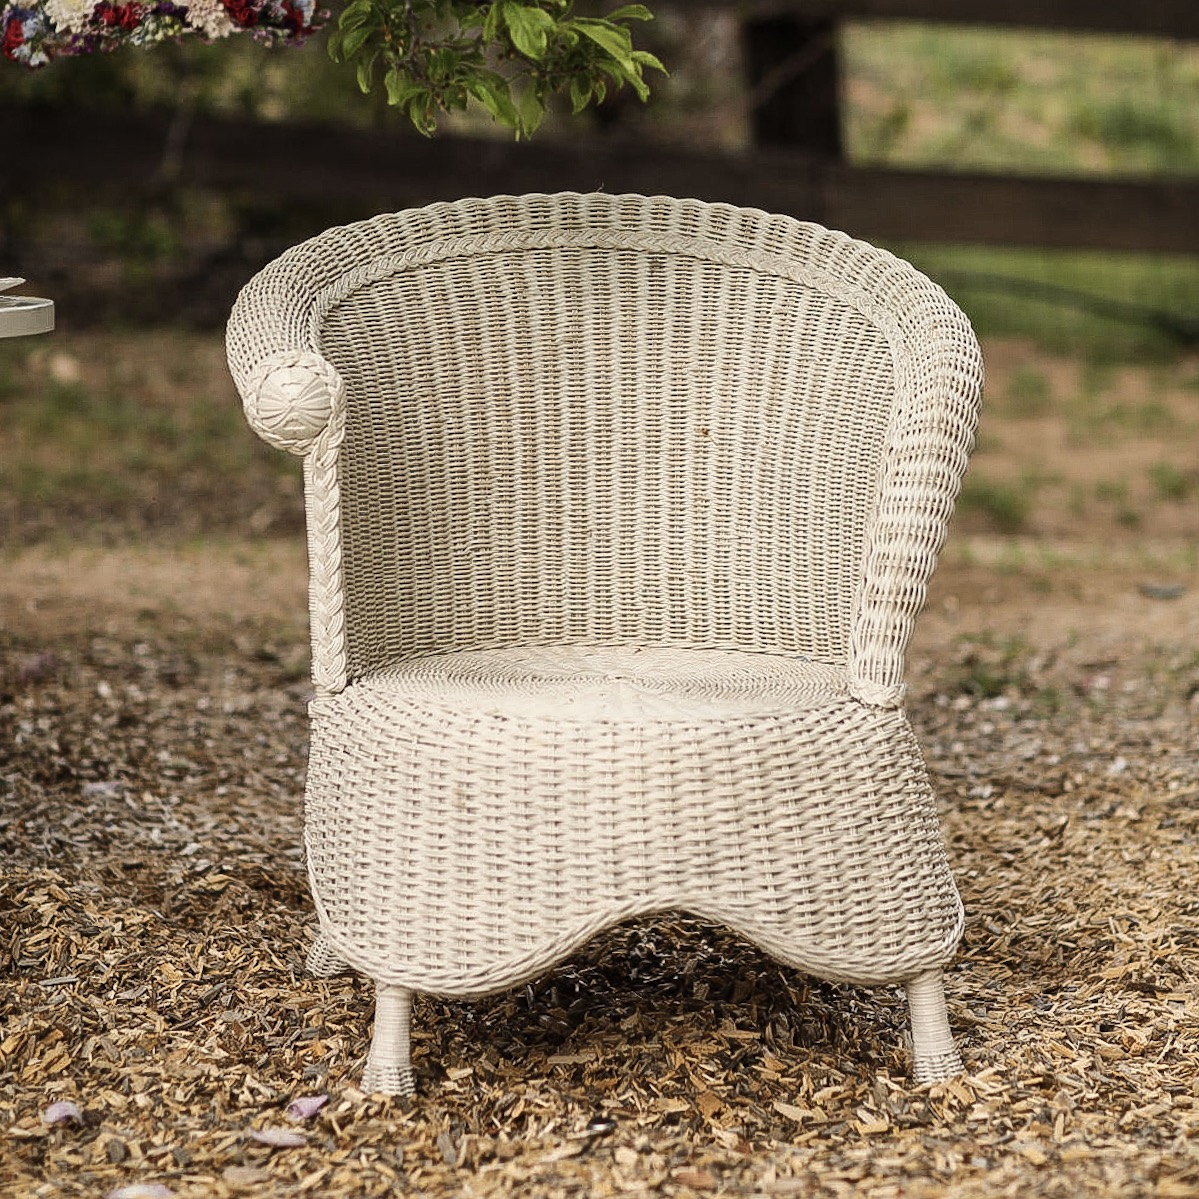 Catalina  Off white wicker chair with a curved back and base. Looks great in photos.